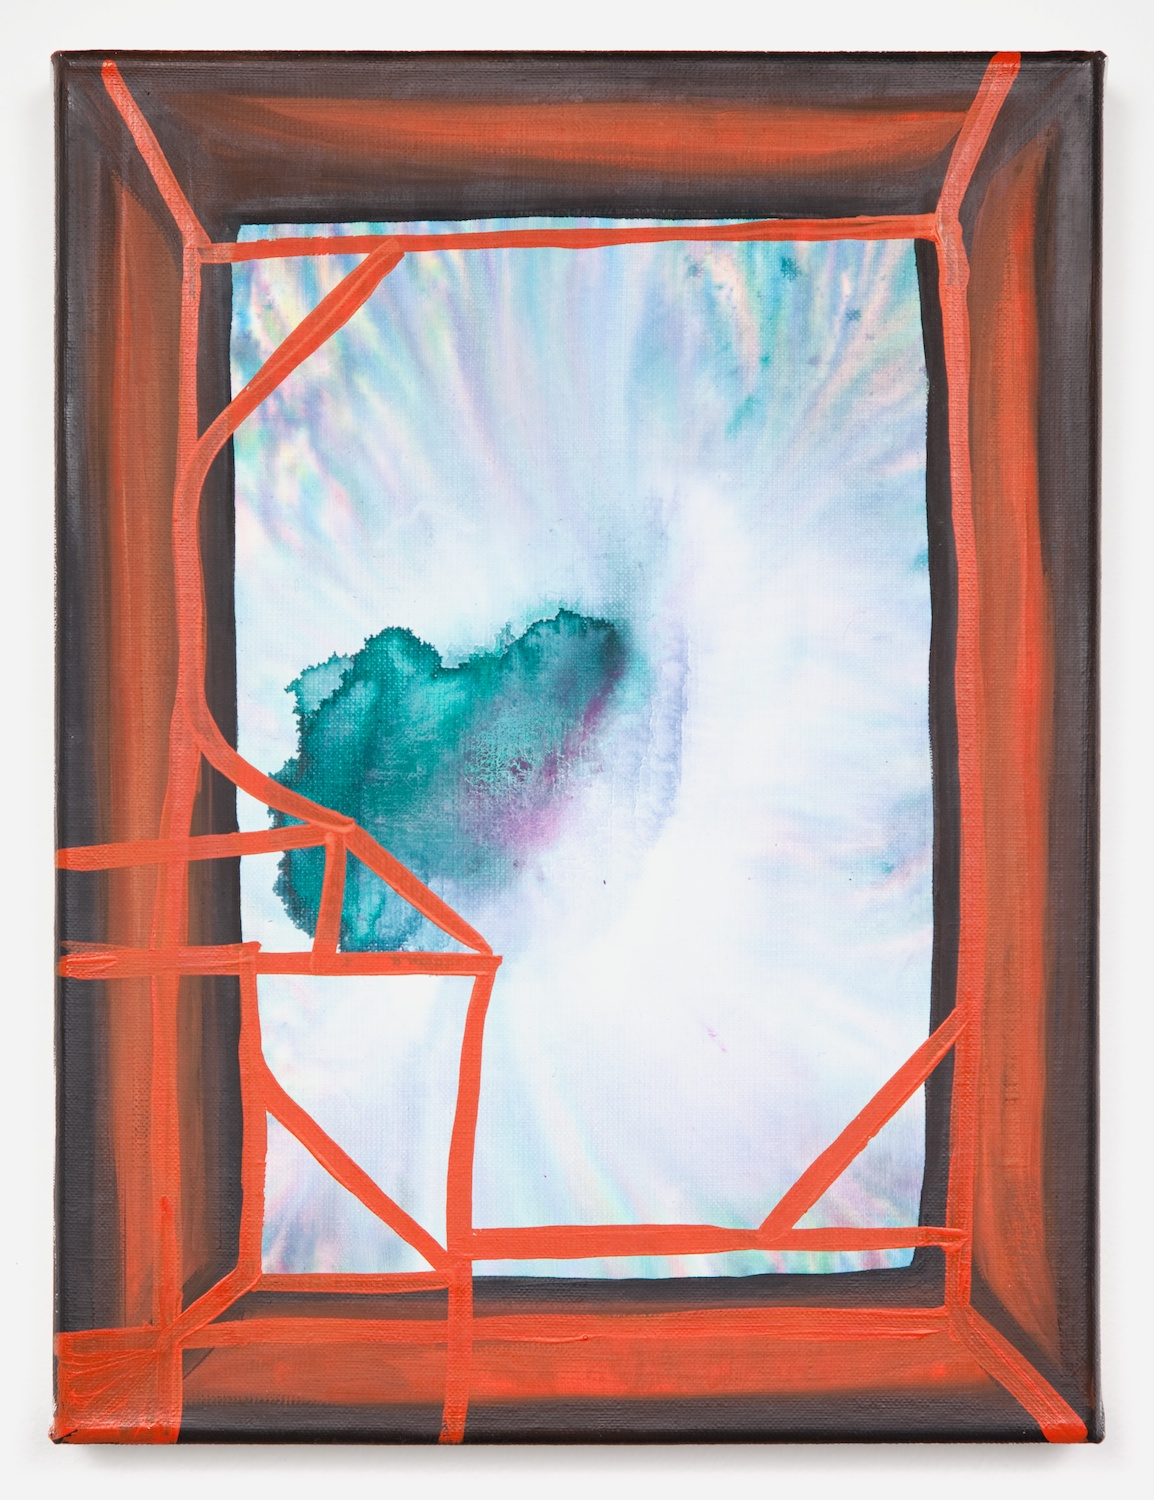 Joanne Greenbaum  Untitled  2011 Oil, acrylic and mixed media on linen 16h x 12w in JG018